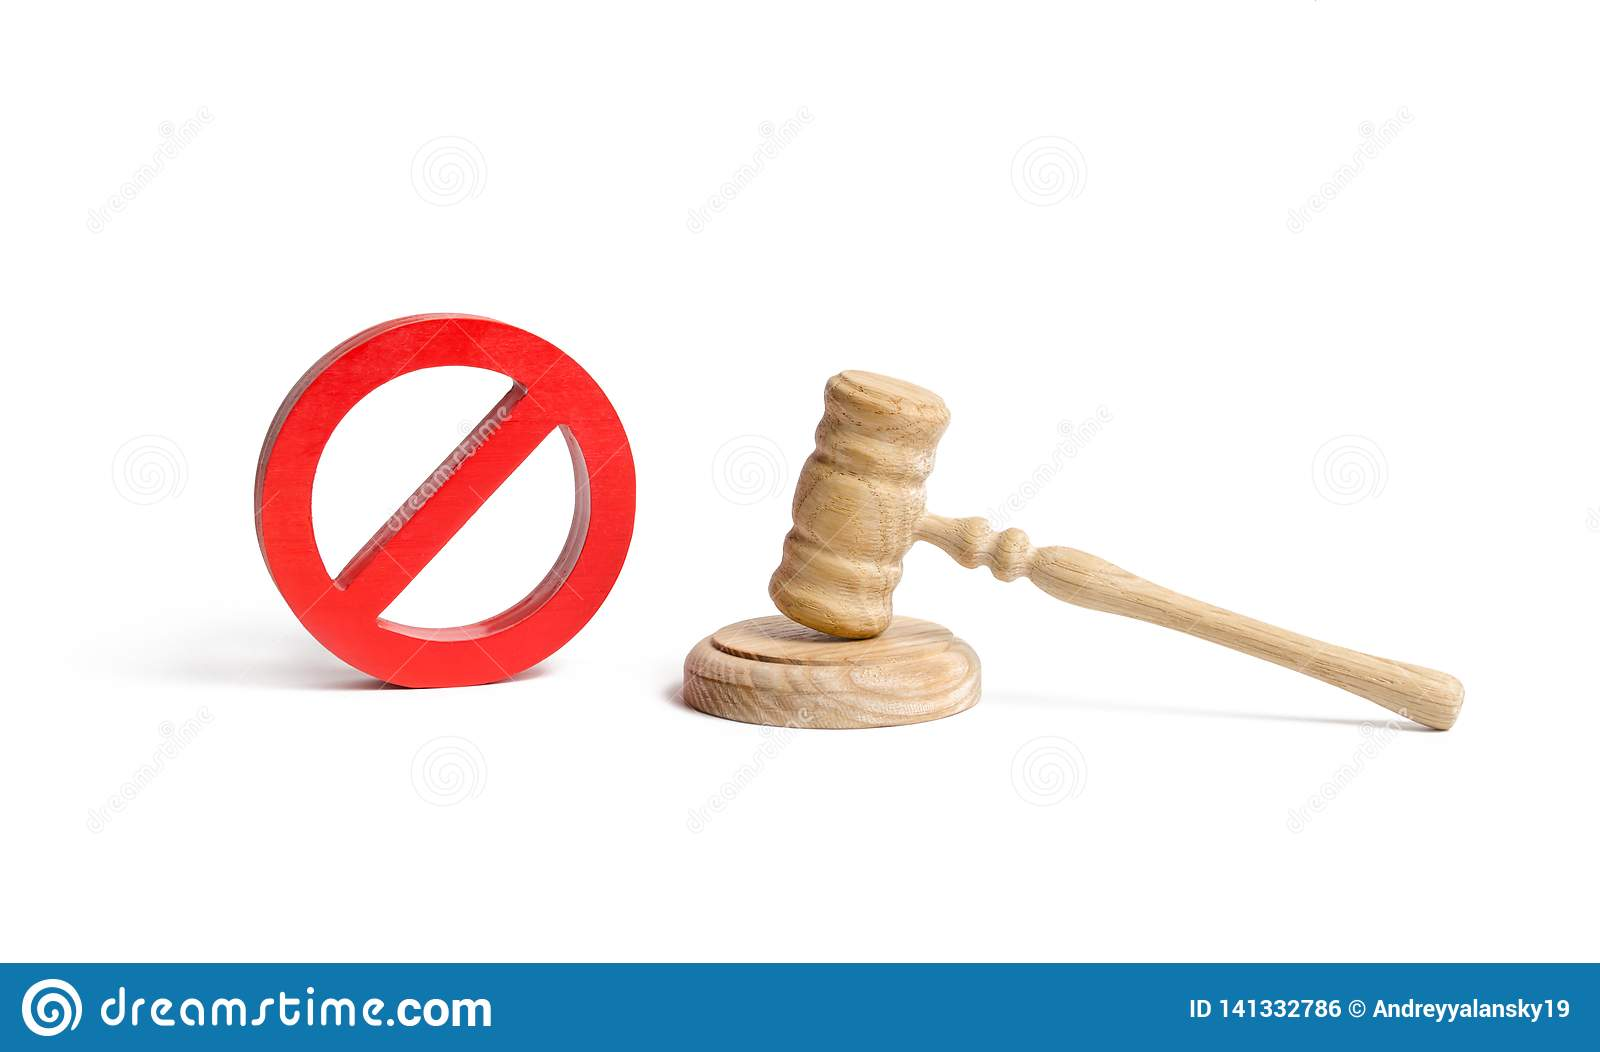 Judge`s gavel and NO symbol on an isolated background. The concept of prohibiting and restrictive laws. Prohibitions